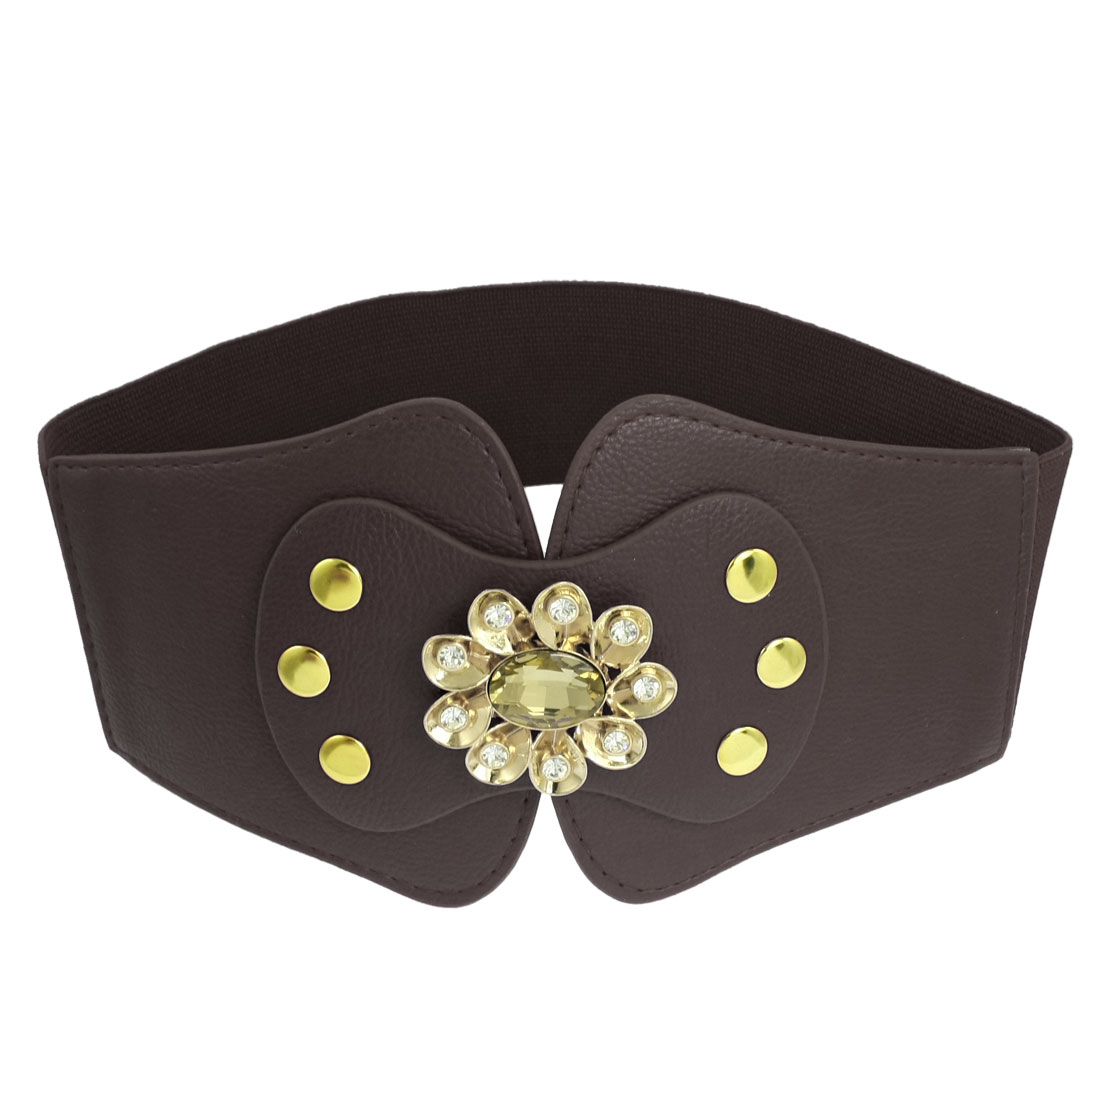 Glittery Rhinestone Floral Coffee Color Elastic Fabric Waist Belt for Ladies